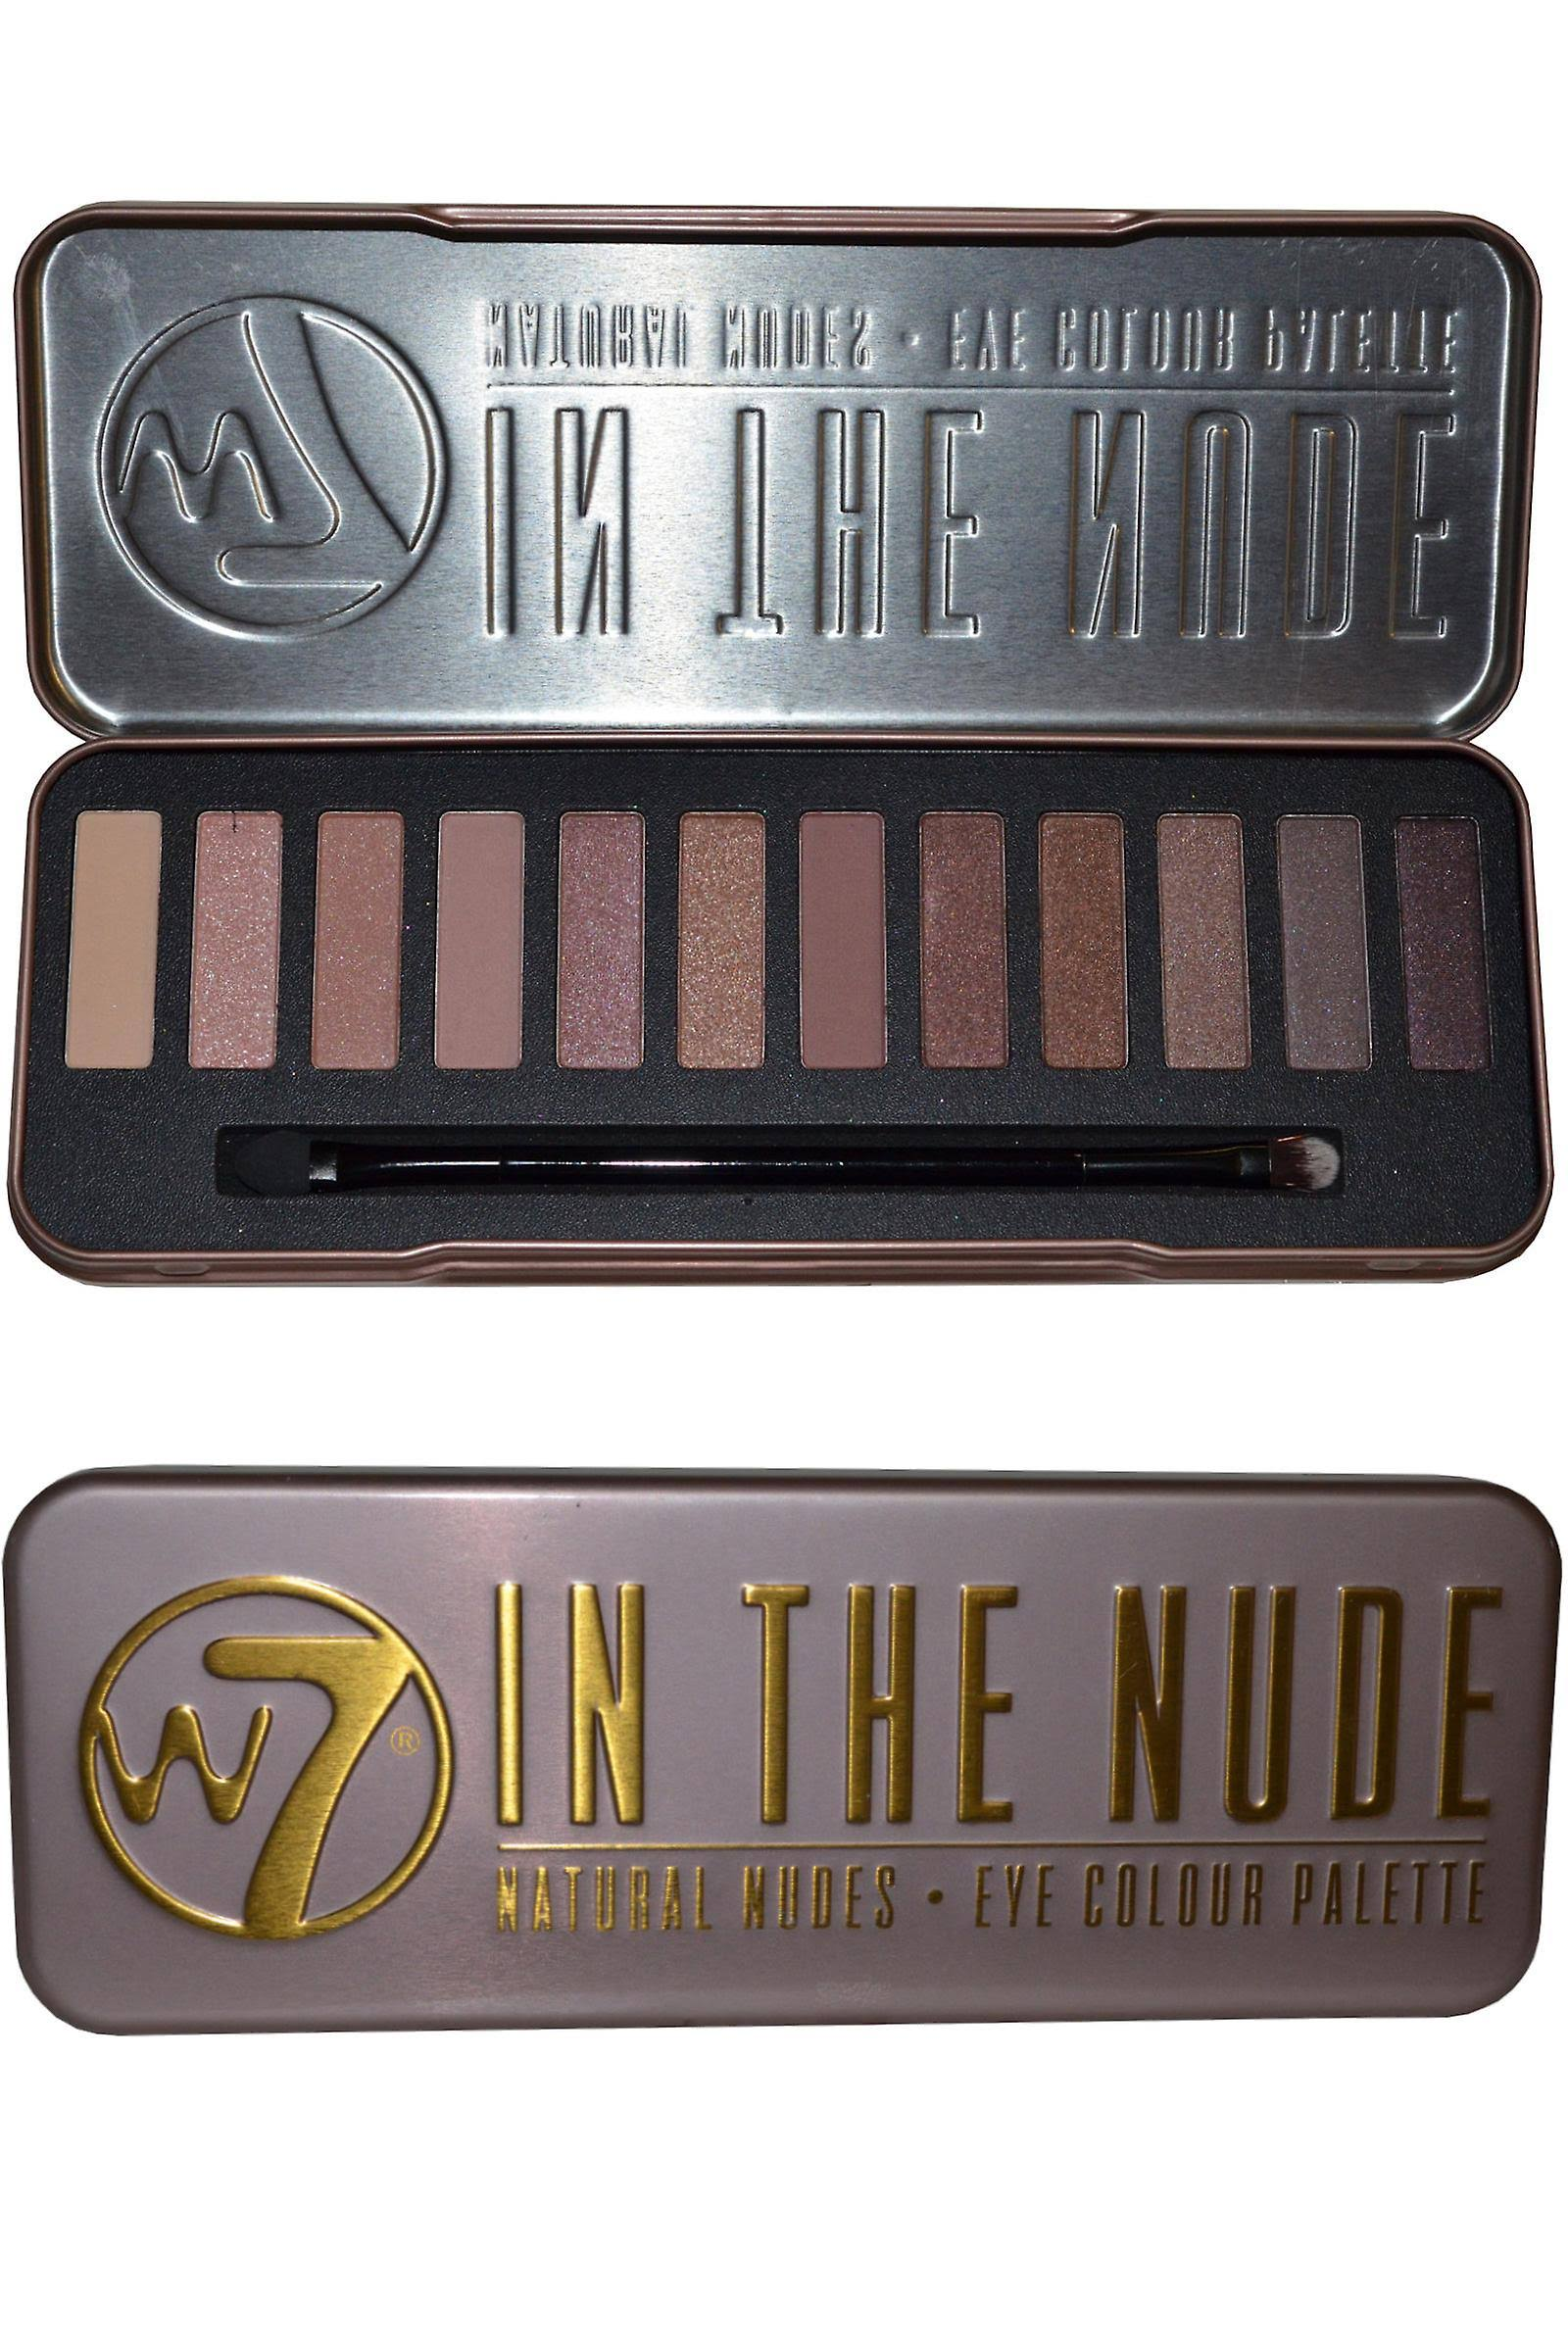 W7 In The Nude Eye Shadow Palette - Natural Nudes, 15.6g